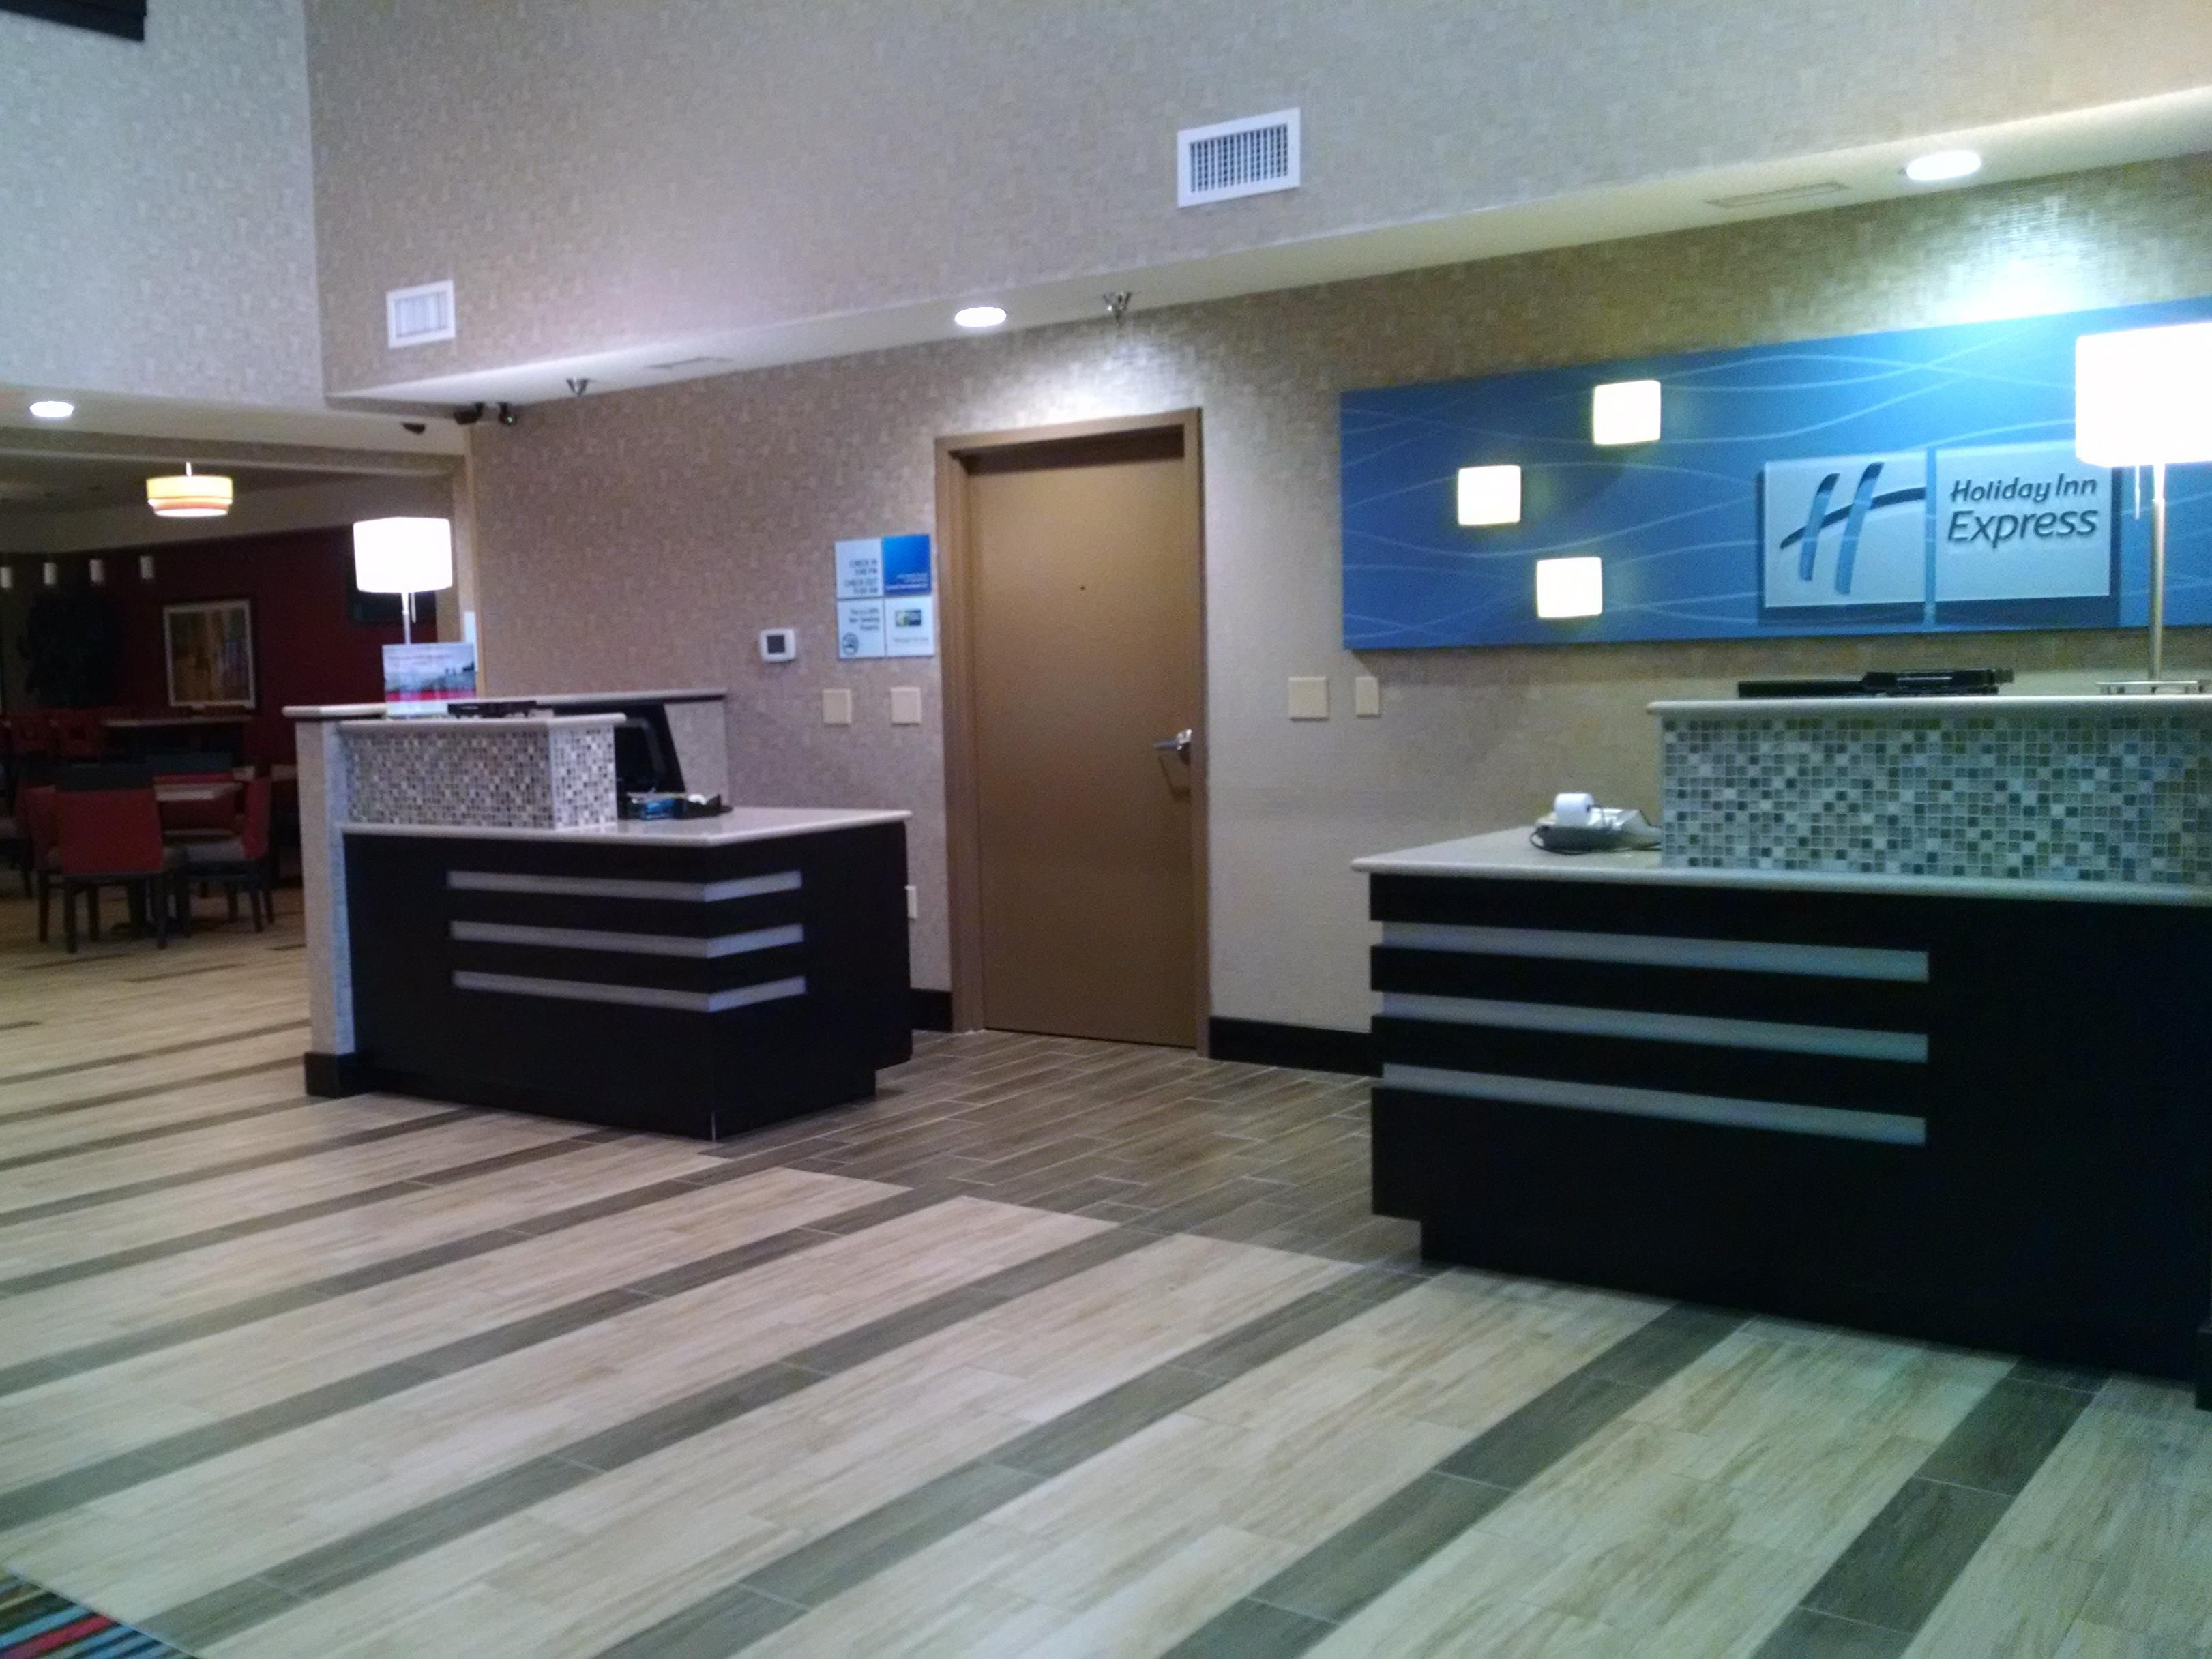 Welcome to the Holiday Inn Express, Cloverdale, Indiana.